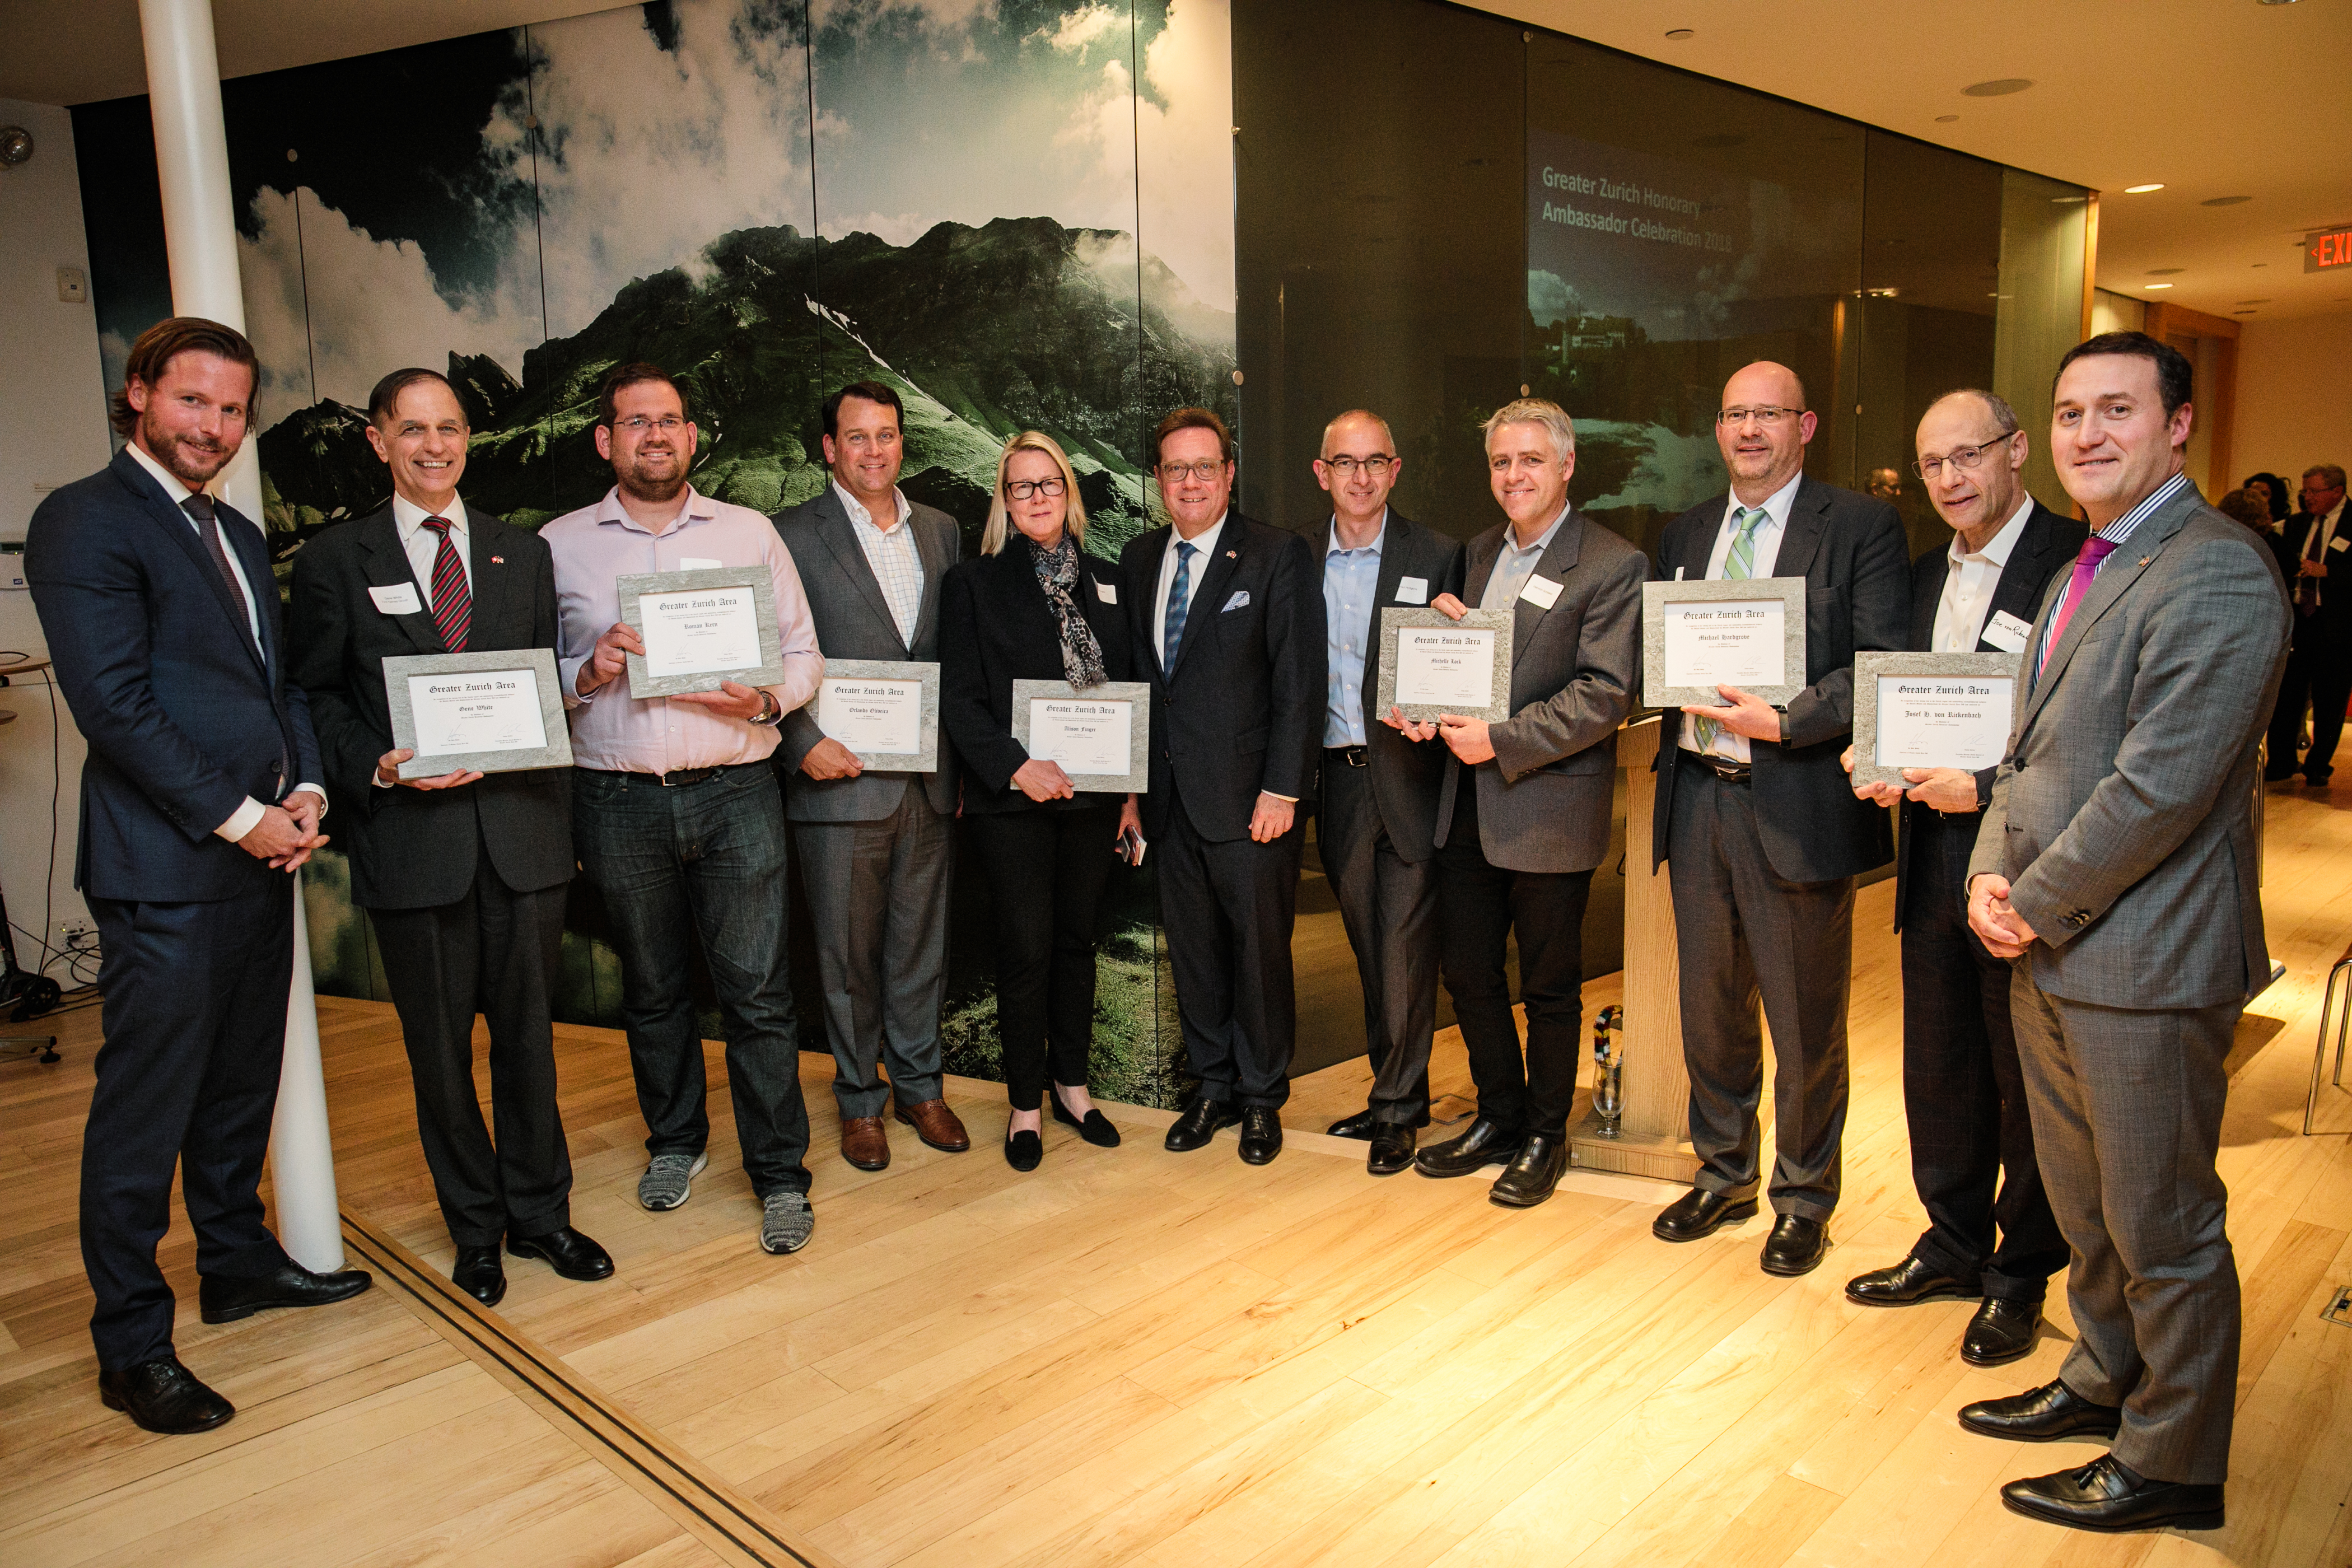 The Greater Zurich Honorary Ambassadors on the East Coast